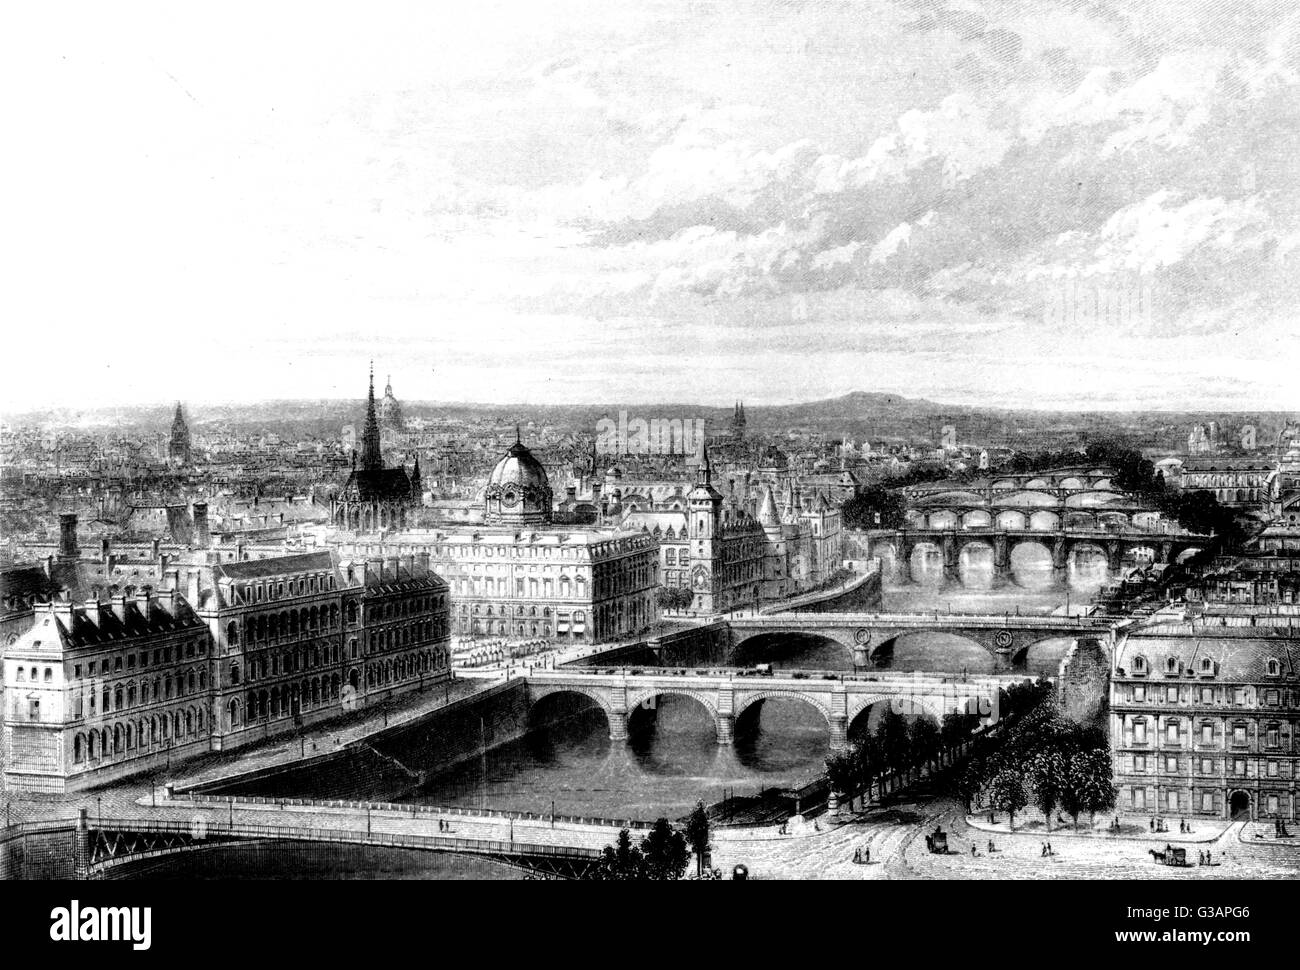 Paris, France - General View Date: circa 1850